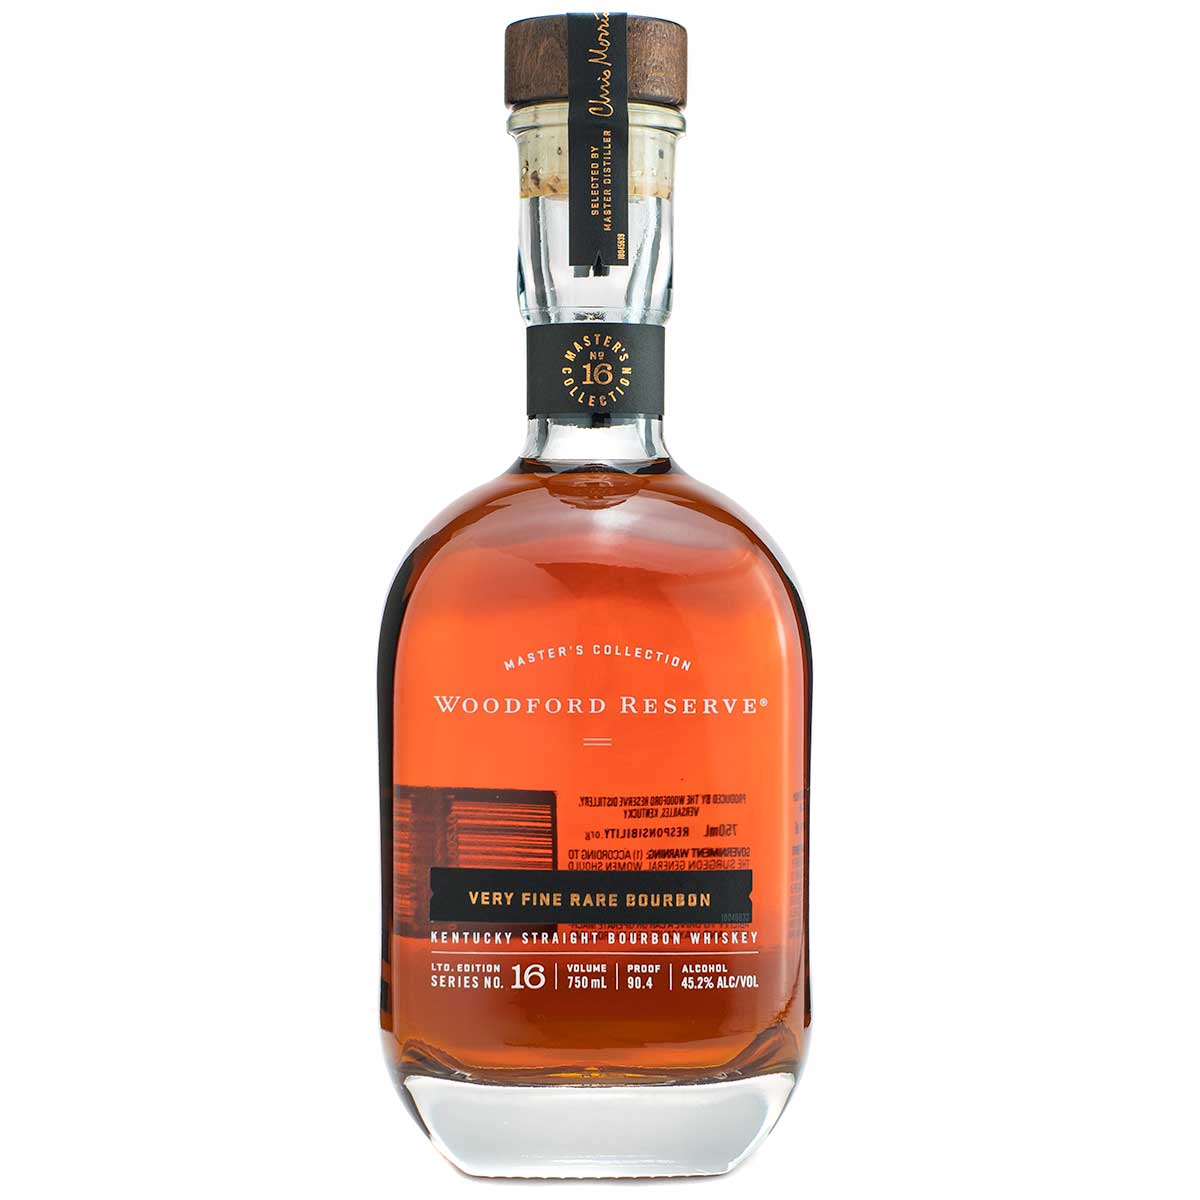 Woodford Reserve Master's Collection Very Fine Rare Bourbon bottle